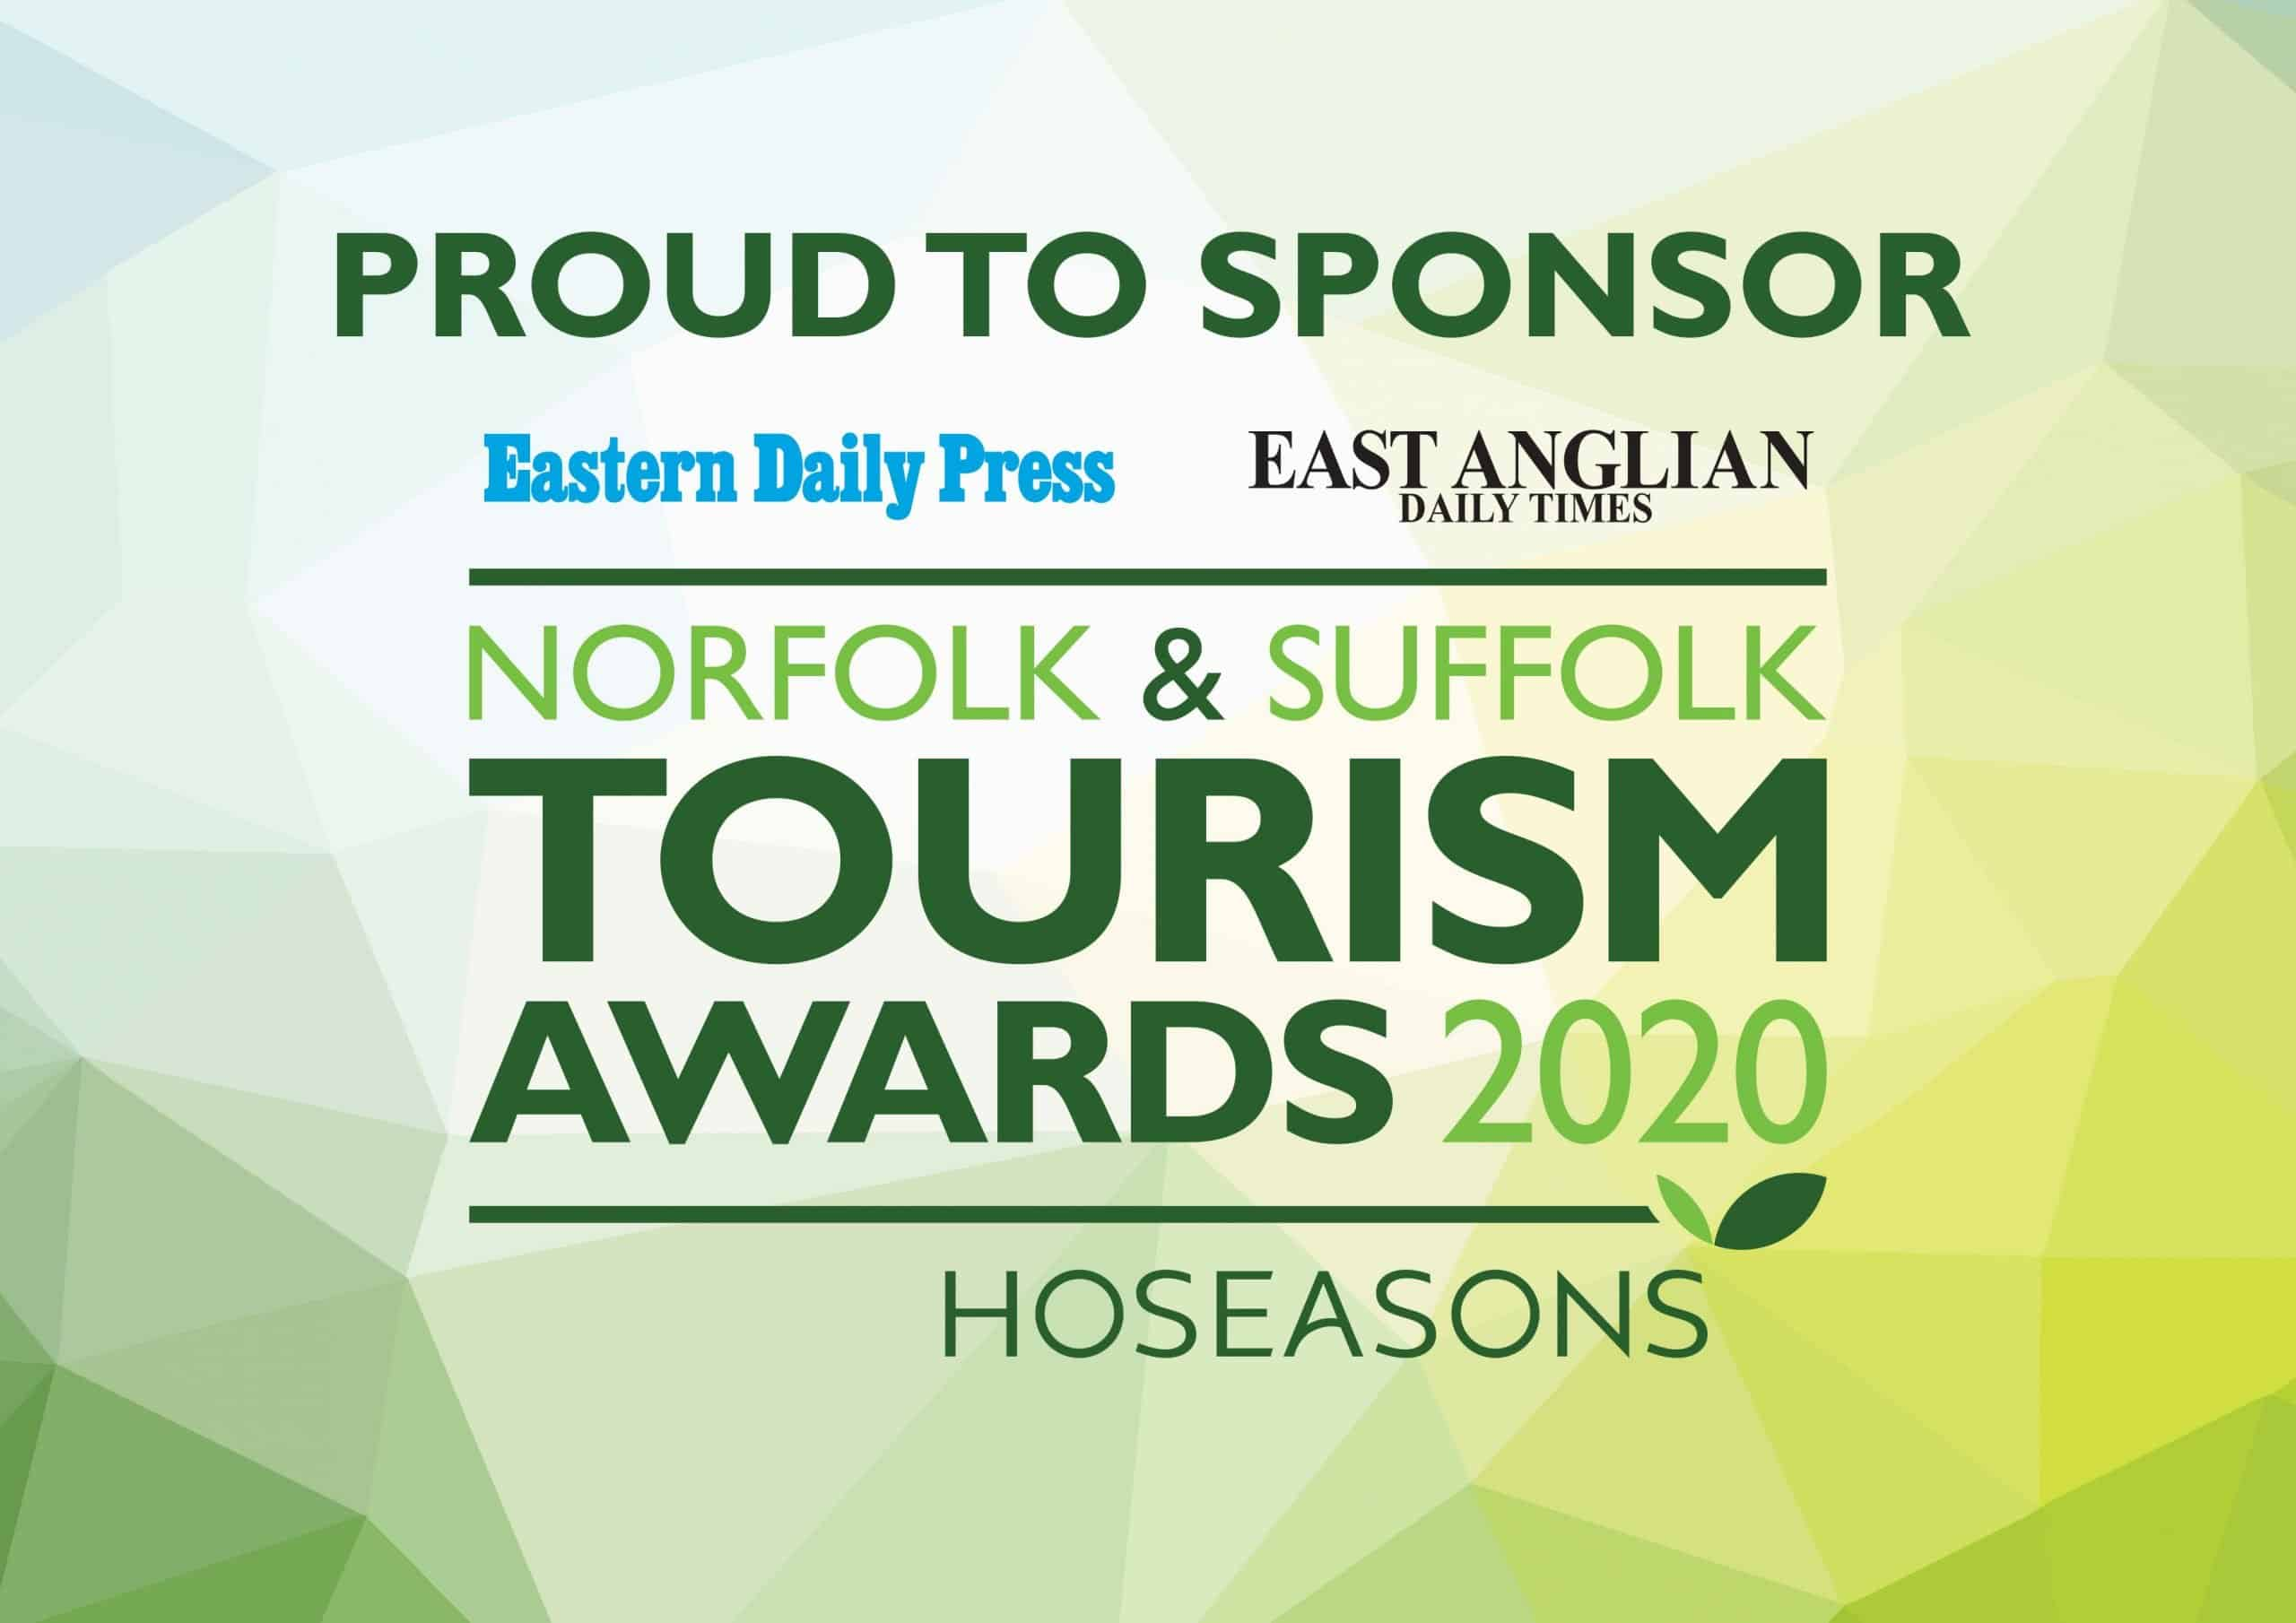 Tourism Awards Proud to sponsor logo 2020